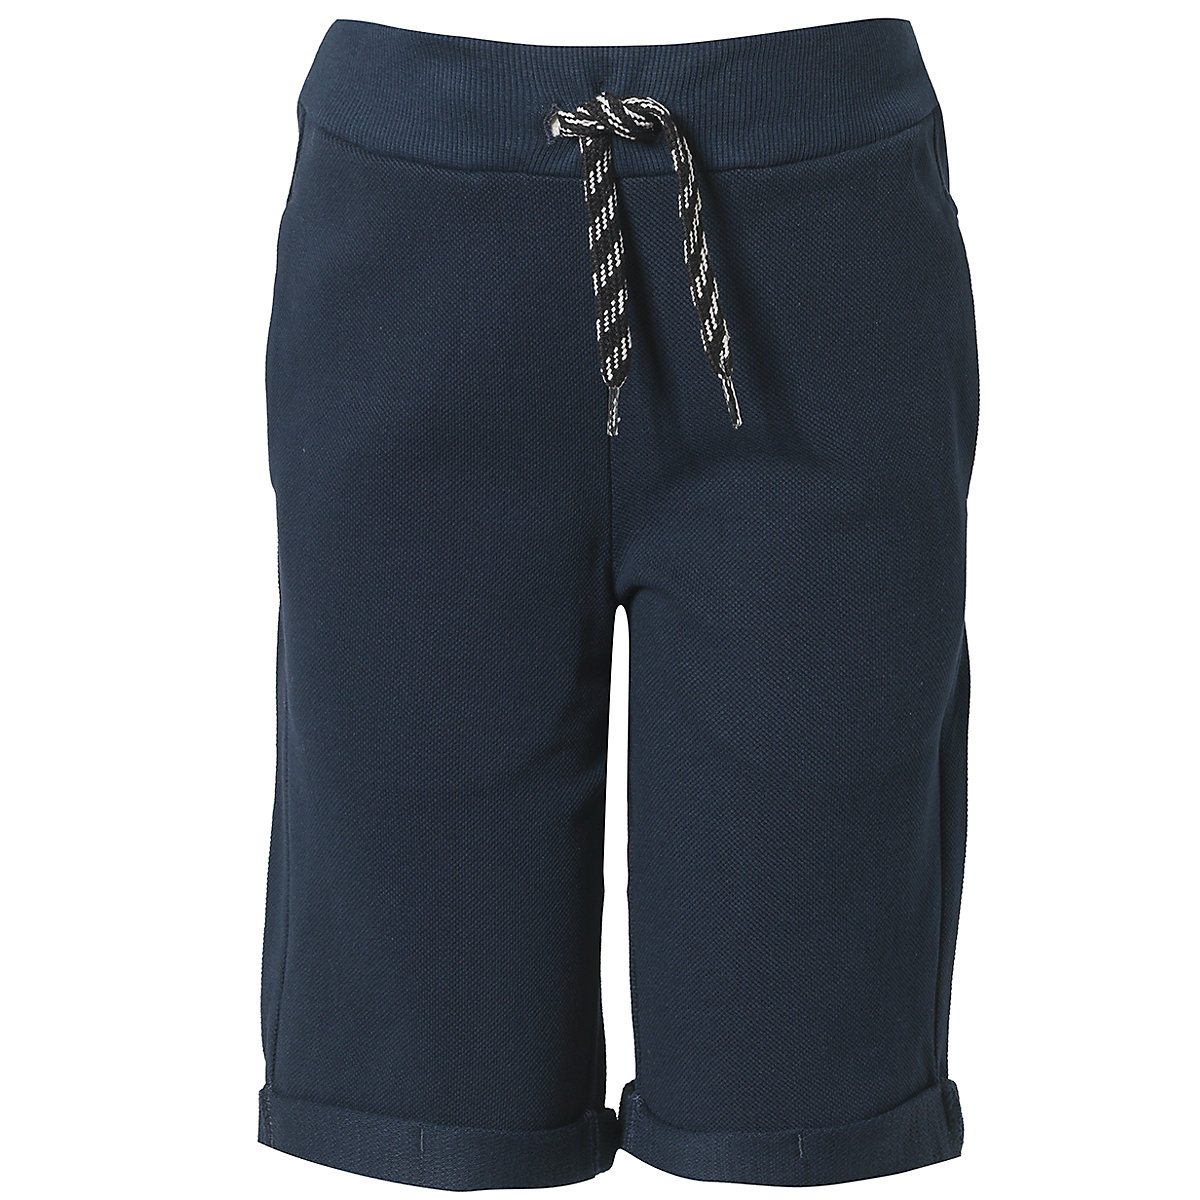 NAME IT Shorts 10623598 for boys and girls child sport for teenagers clothes Cotton Elastic Waist Boys